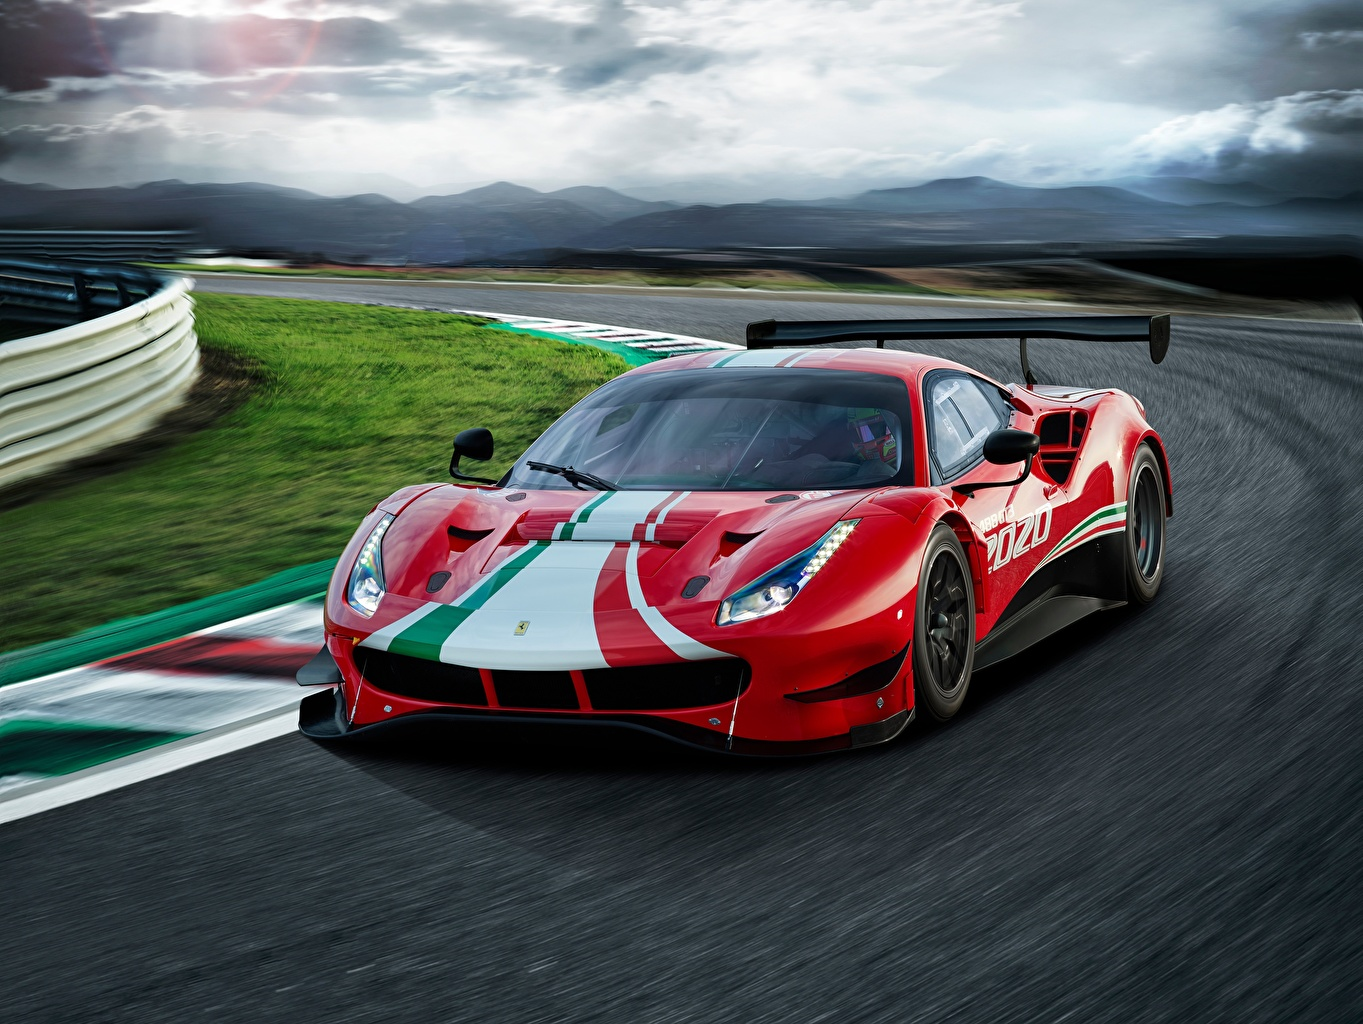 Desktop Wallpapers Ferrari 488, GT3, Evo Red Motion automobile moving riding driving at speed auto Cars